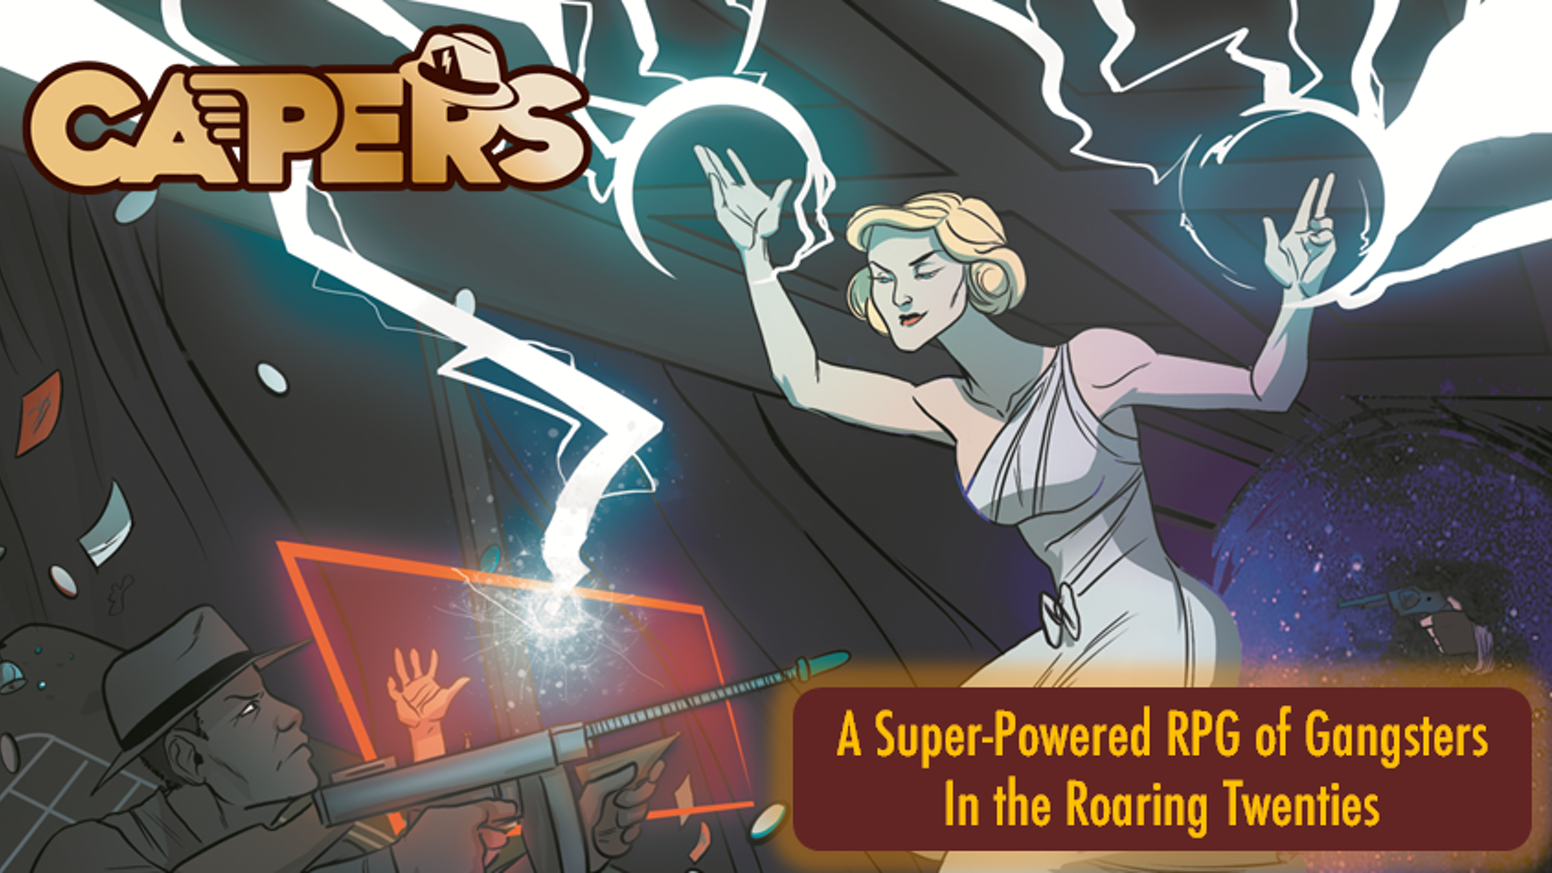 A Super-Powered RPG of Gangsters in the Roaring Twenties.